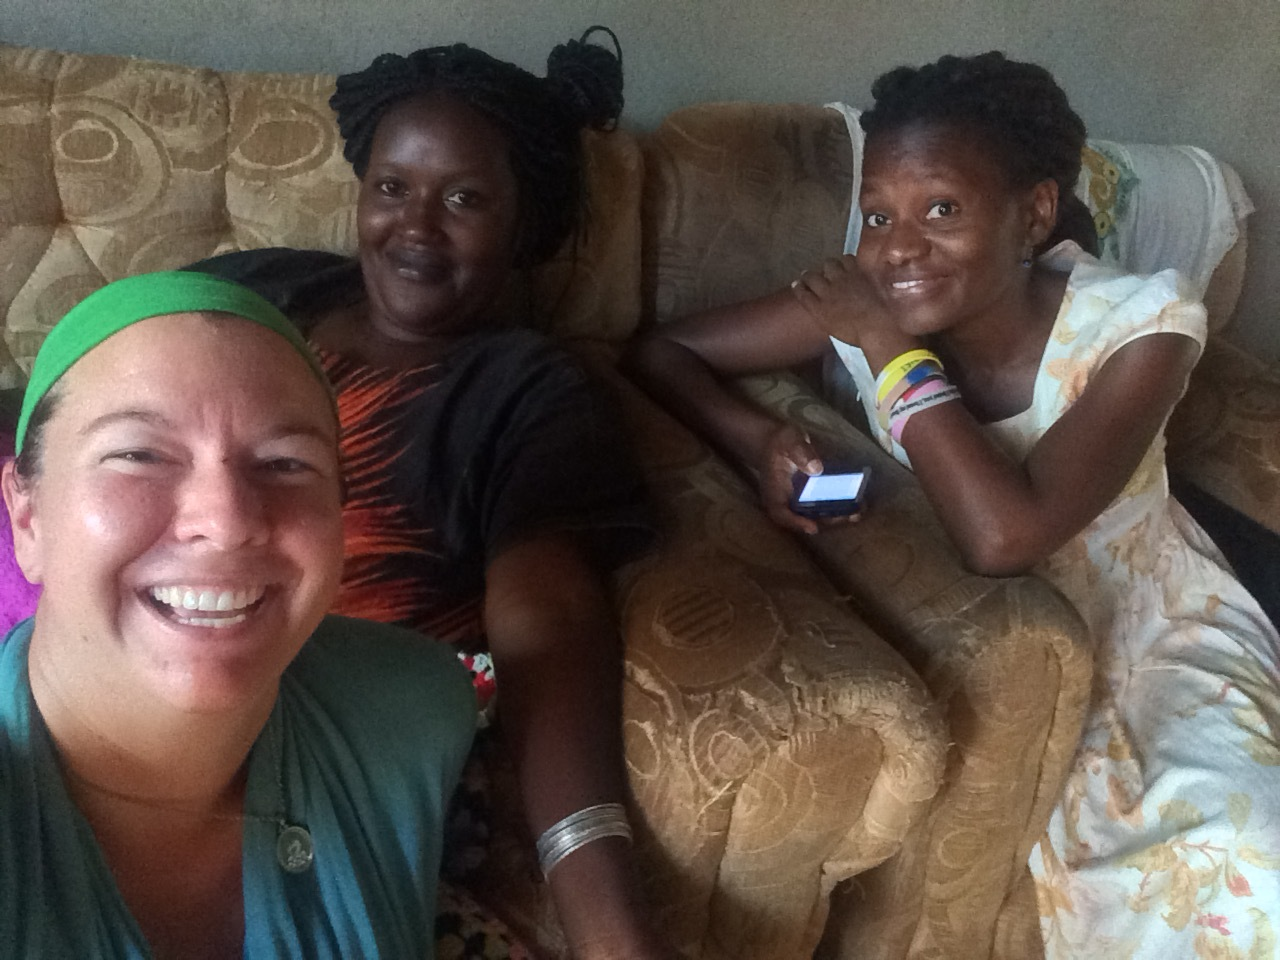 Jane, Zaitun and I visiting and doing some orthopedic treatment